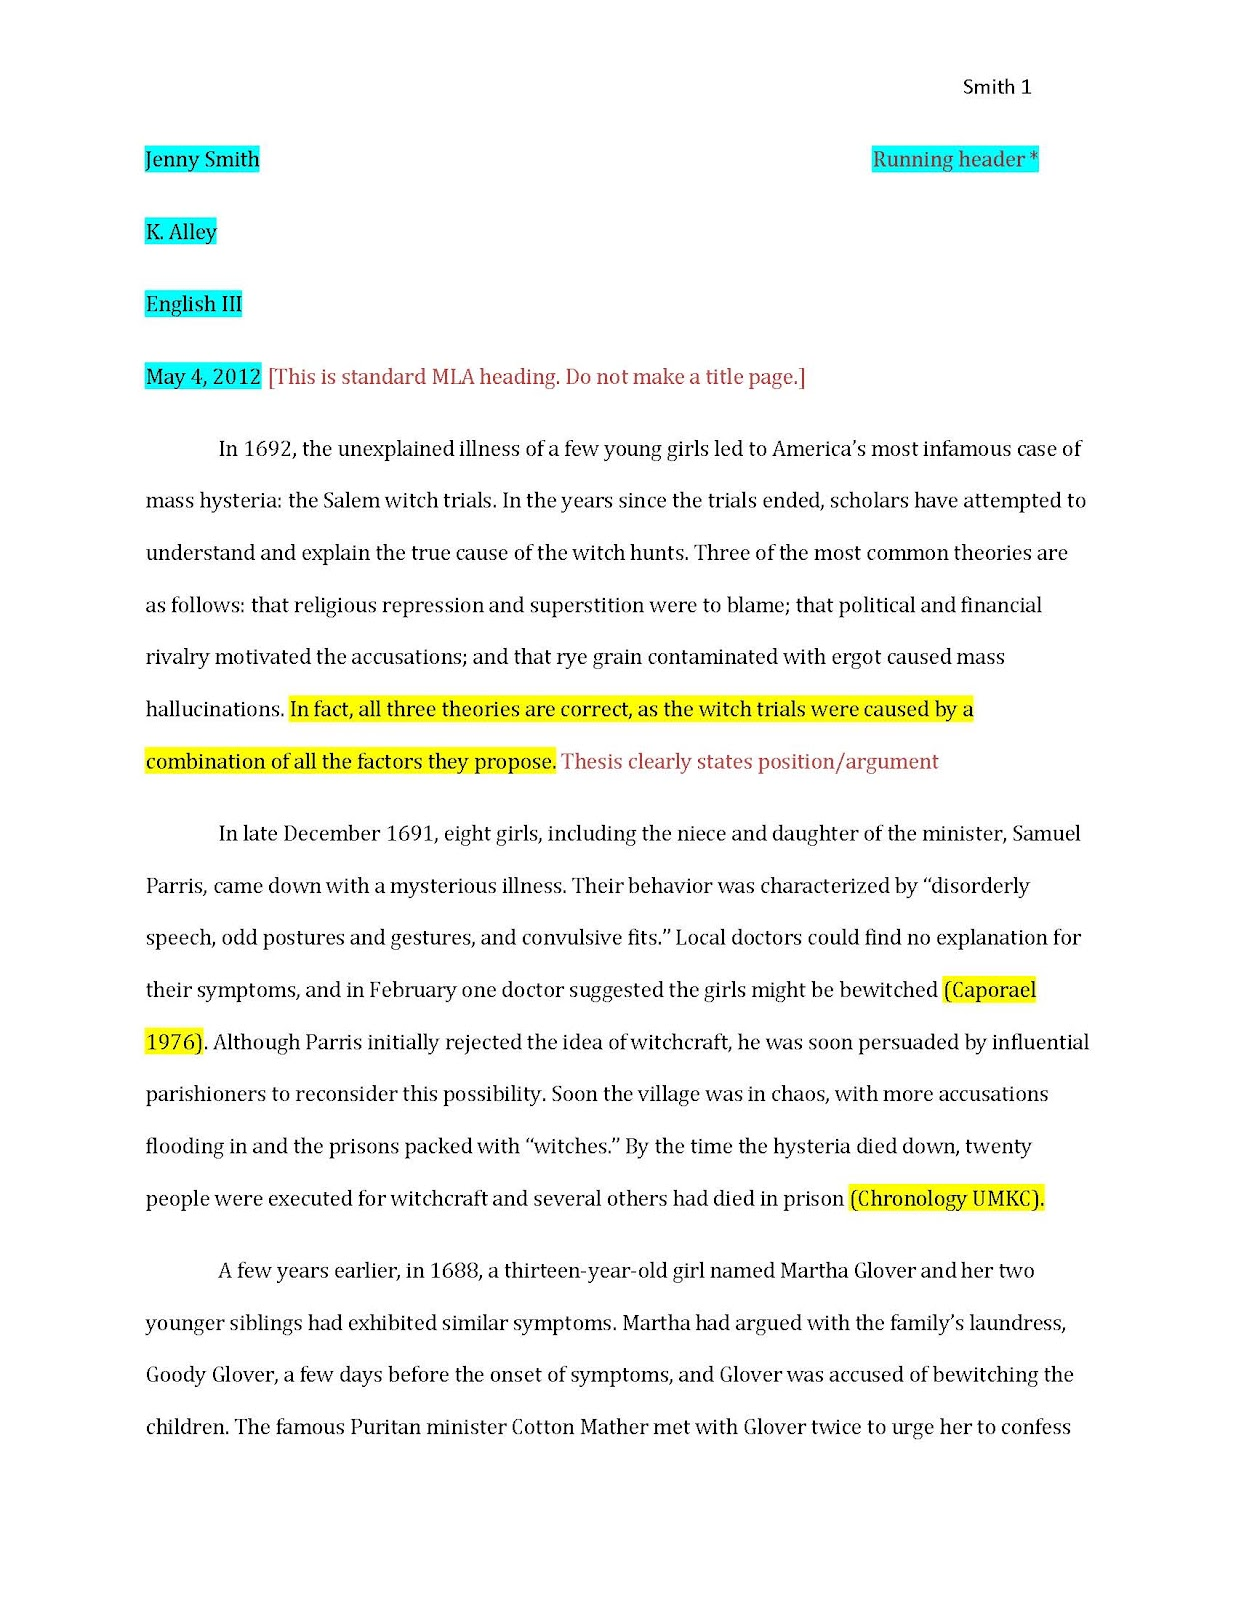 016 Examplepaper Page 1 Bibliography Research Paper Dreaded Sample Format For Annotated Citing A Full